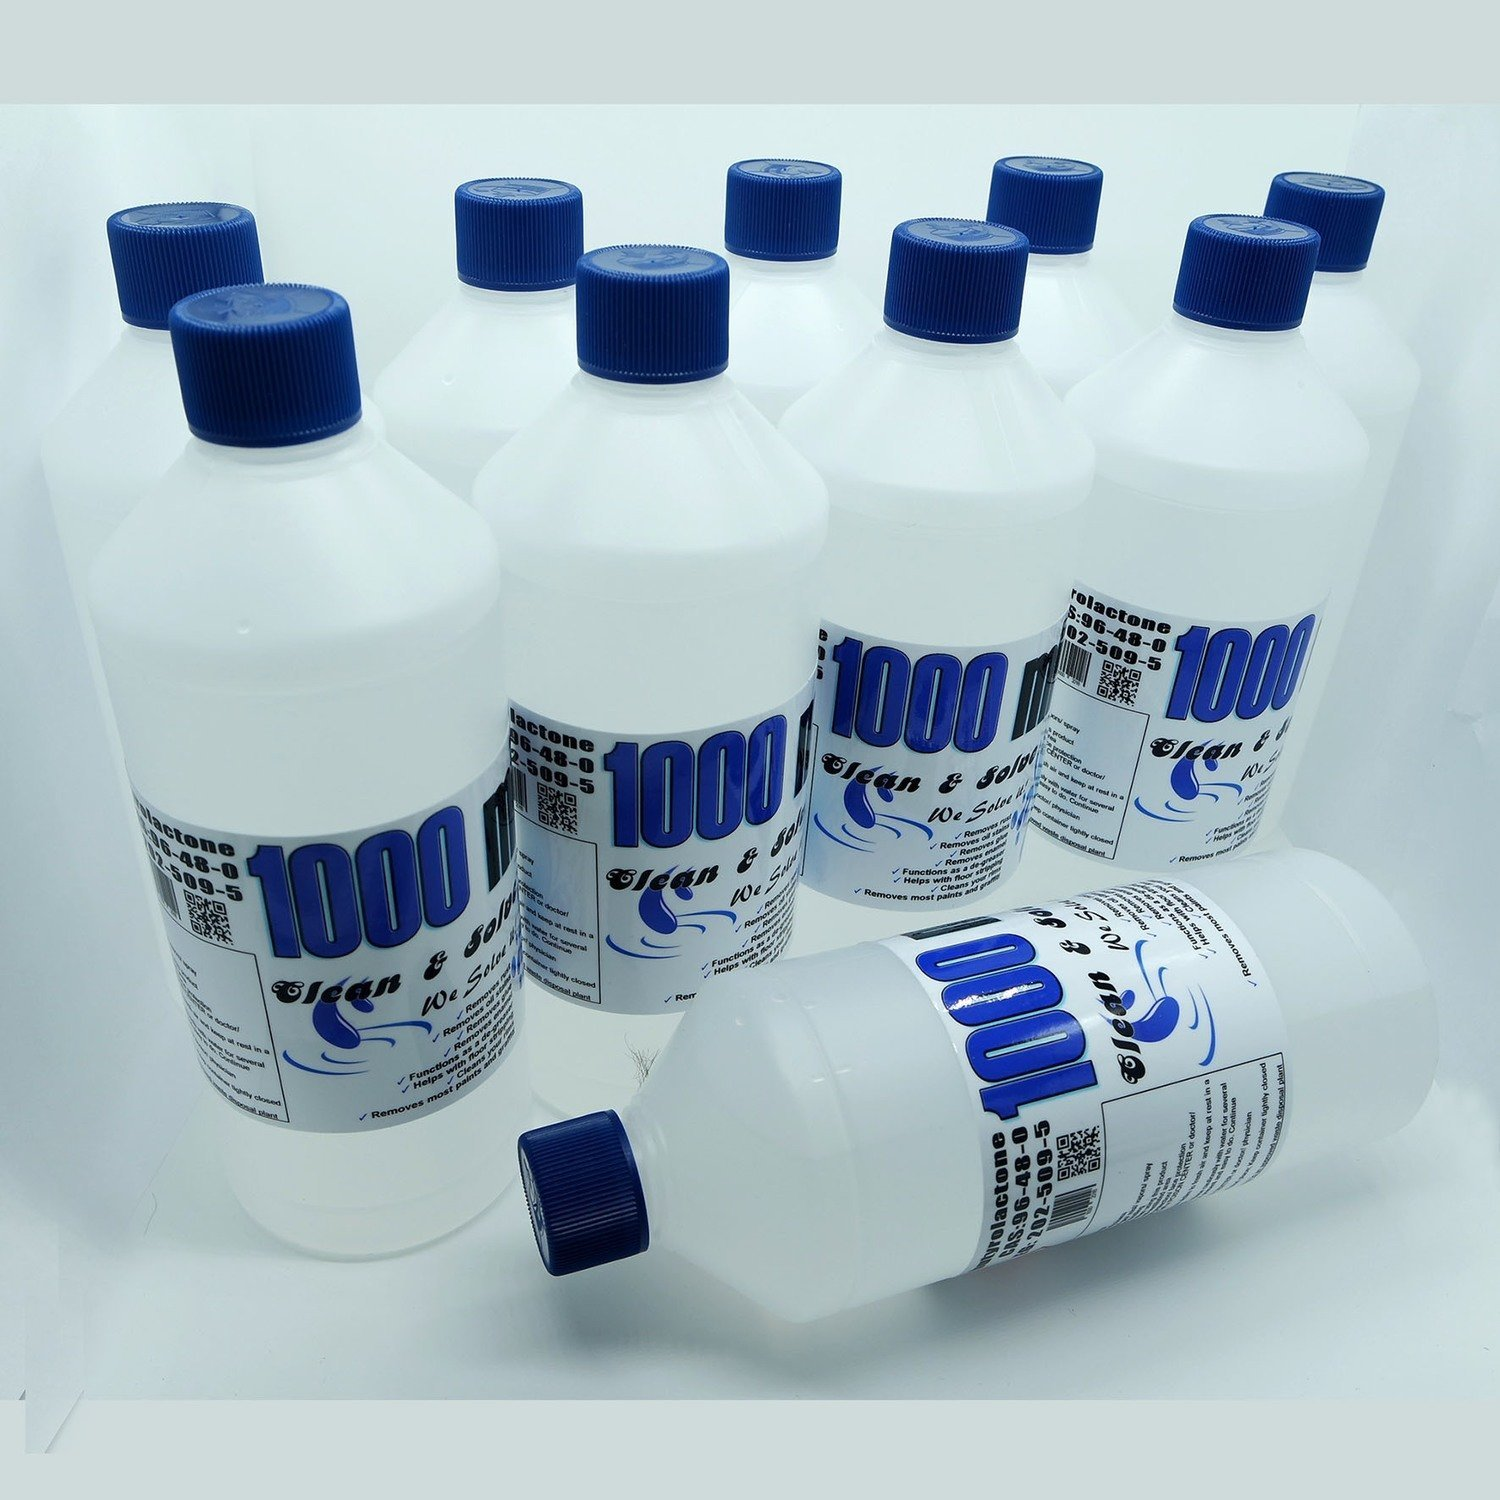 Multi Remover 10.000 ml Technical Grade + with every order 1x 500 ml technical grade Free!